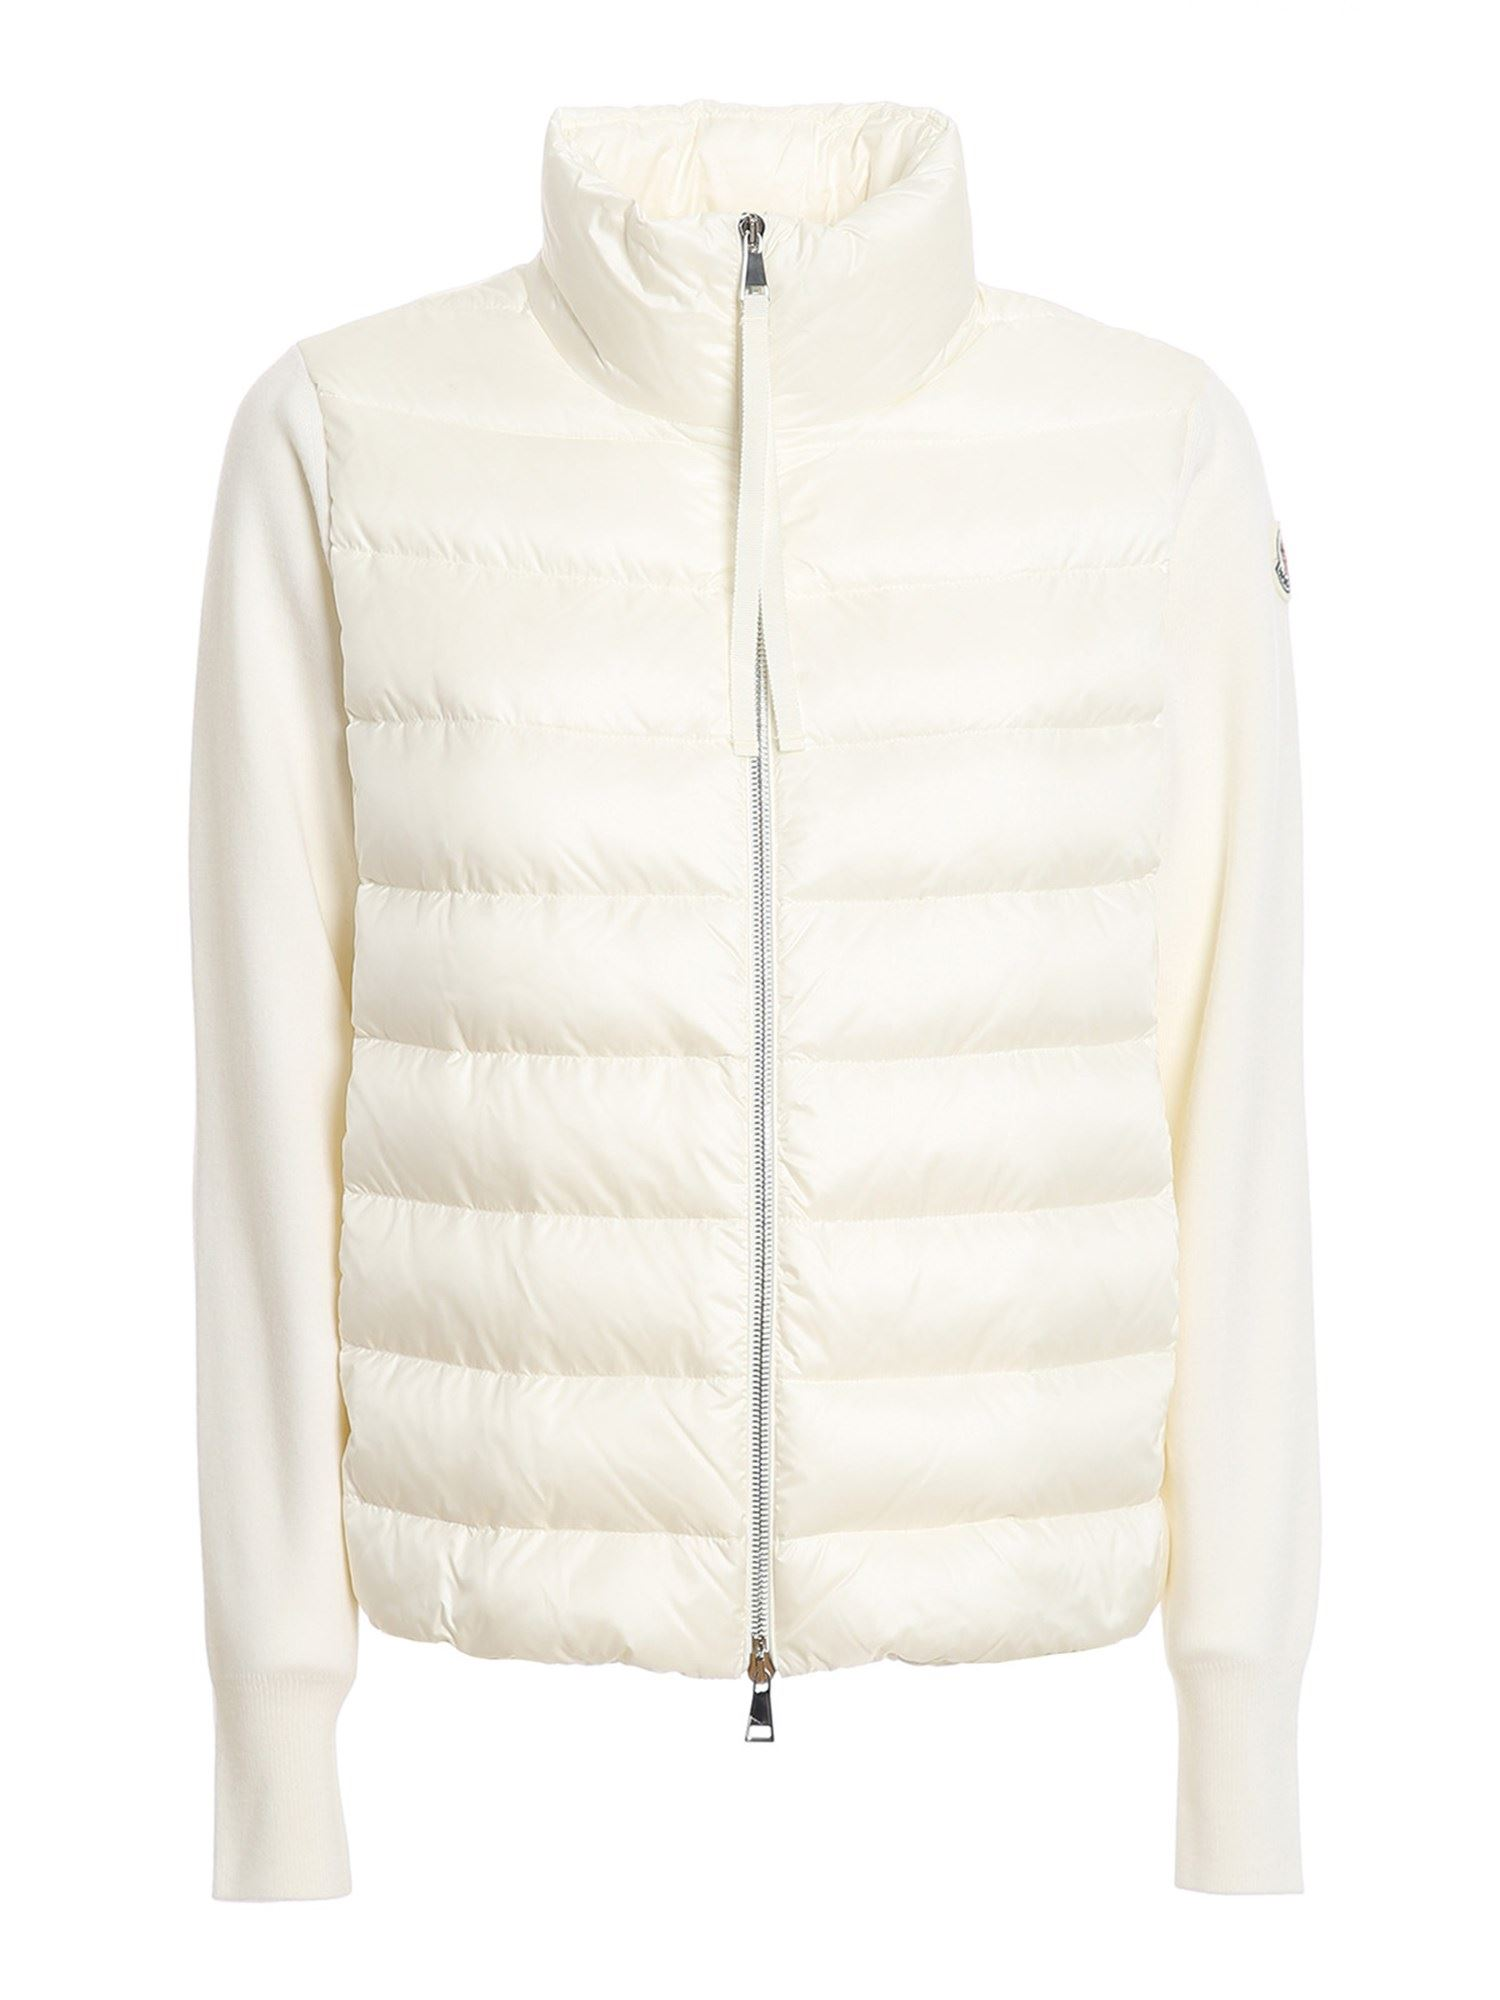 Moncler PADDED FRONT CARDIGAN IN WHITE